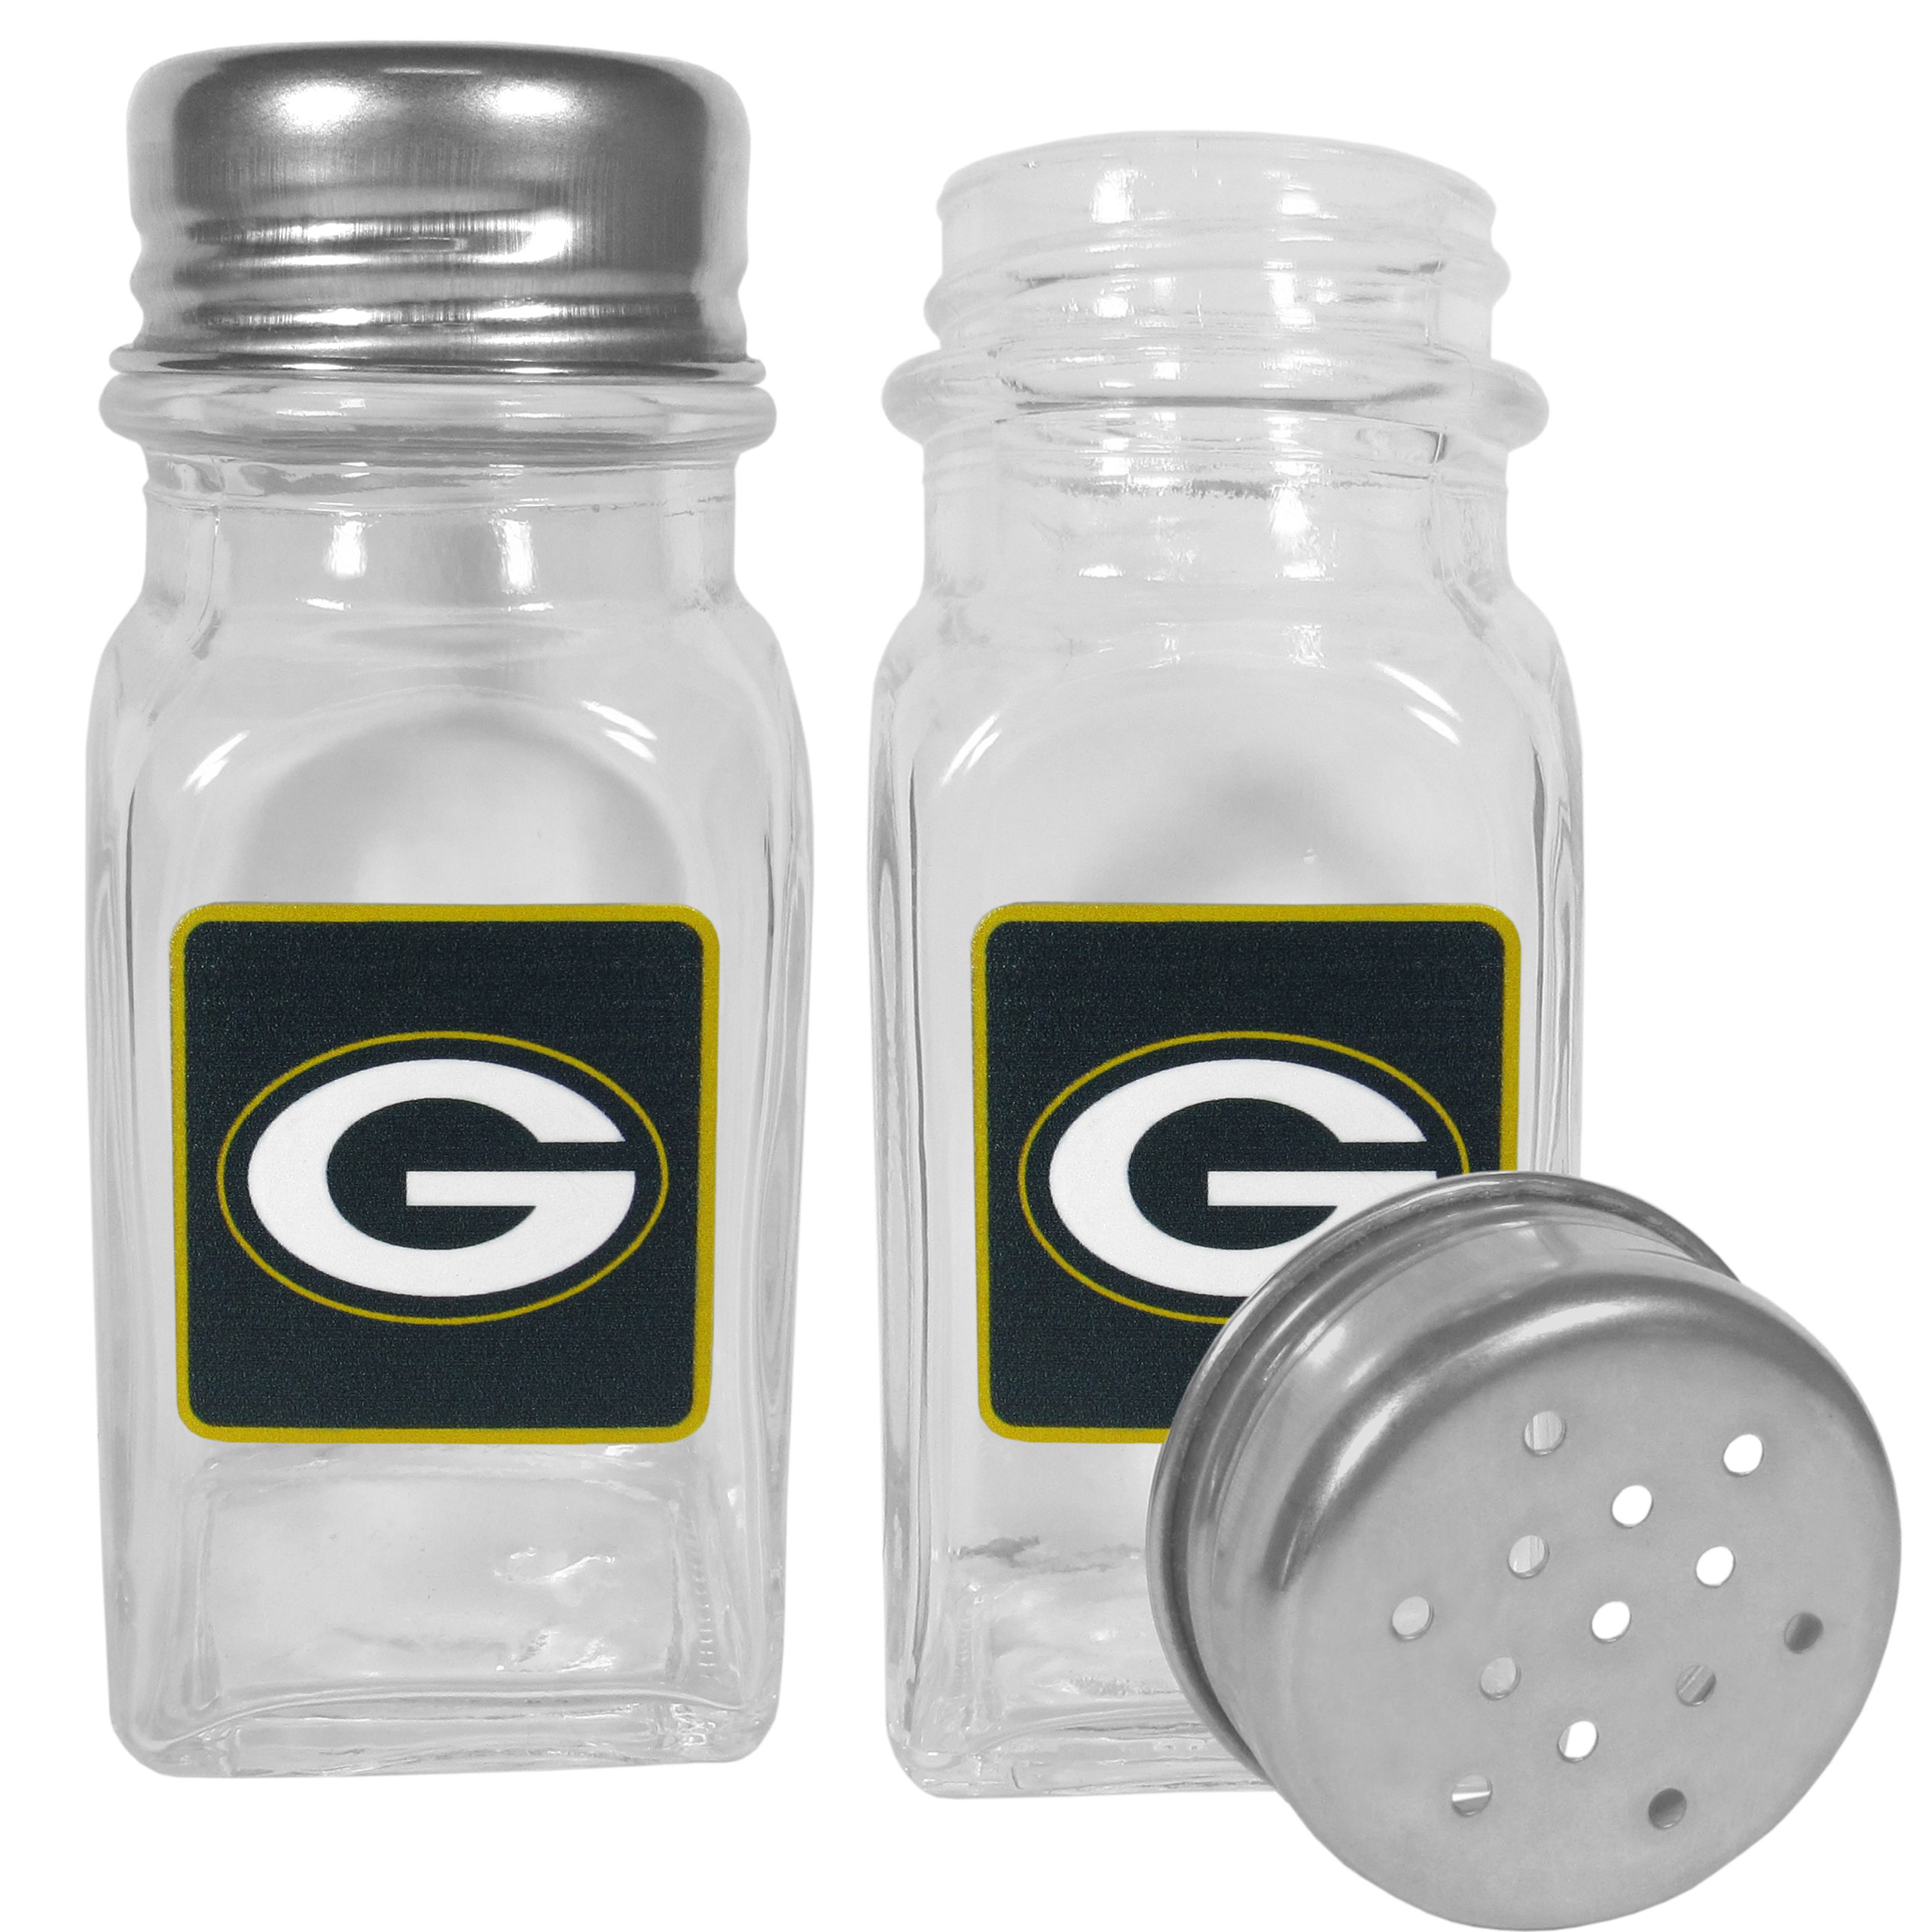 Green Bay Packers Graphics Salt & Pepper Shaker - No tailgate party is complete without your Green Bay Packers salt & pepper shakers featuring bright team logos. The diner replica salt and pepper shakers are glass with screw top lids. These team shakers are a great grill accessory whether you are barbecuing on the patio, picnicing or having a game day party.